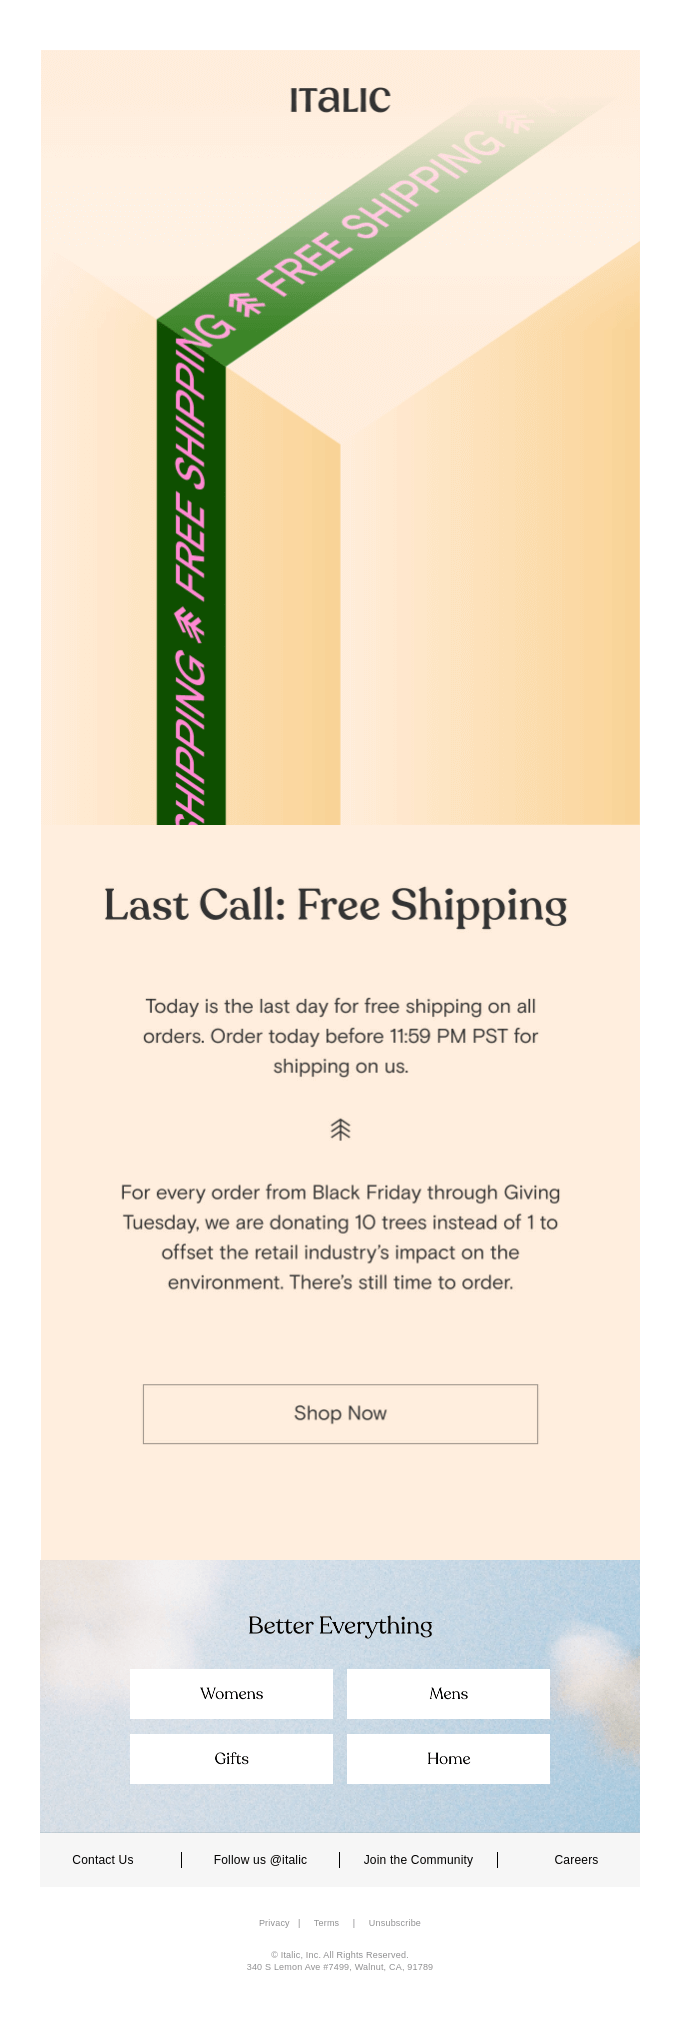 Last chance for free shipping